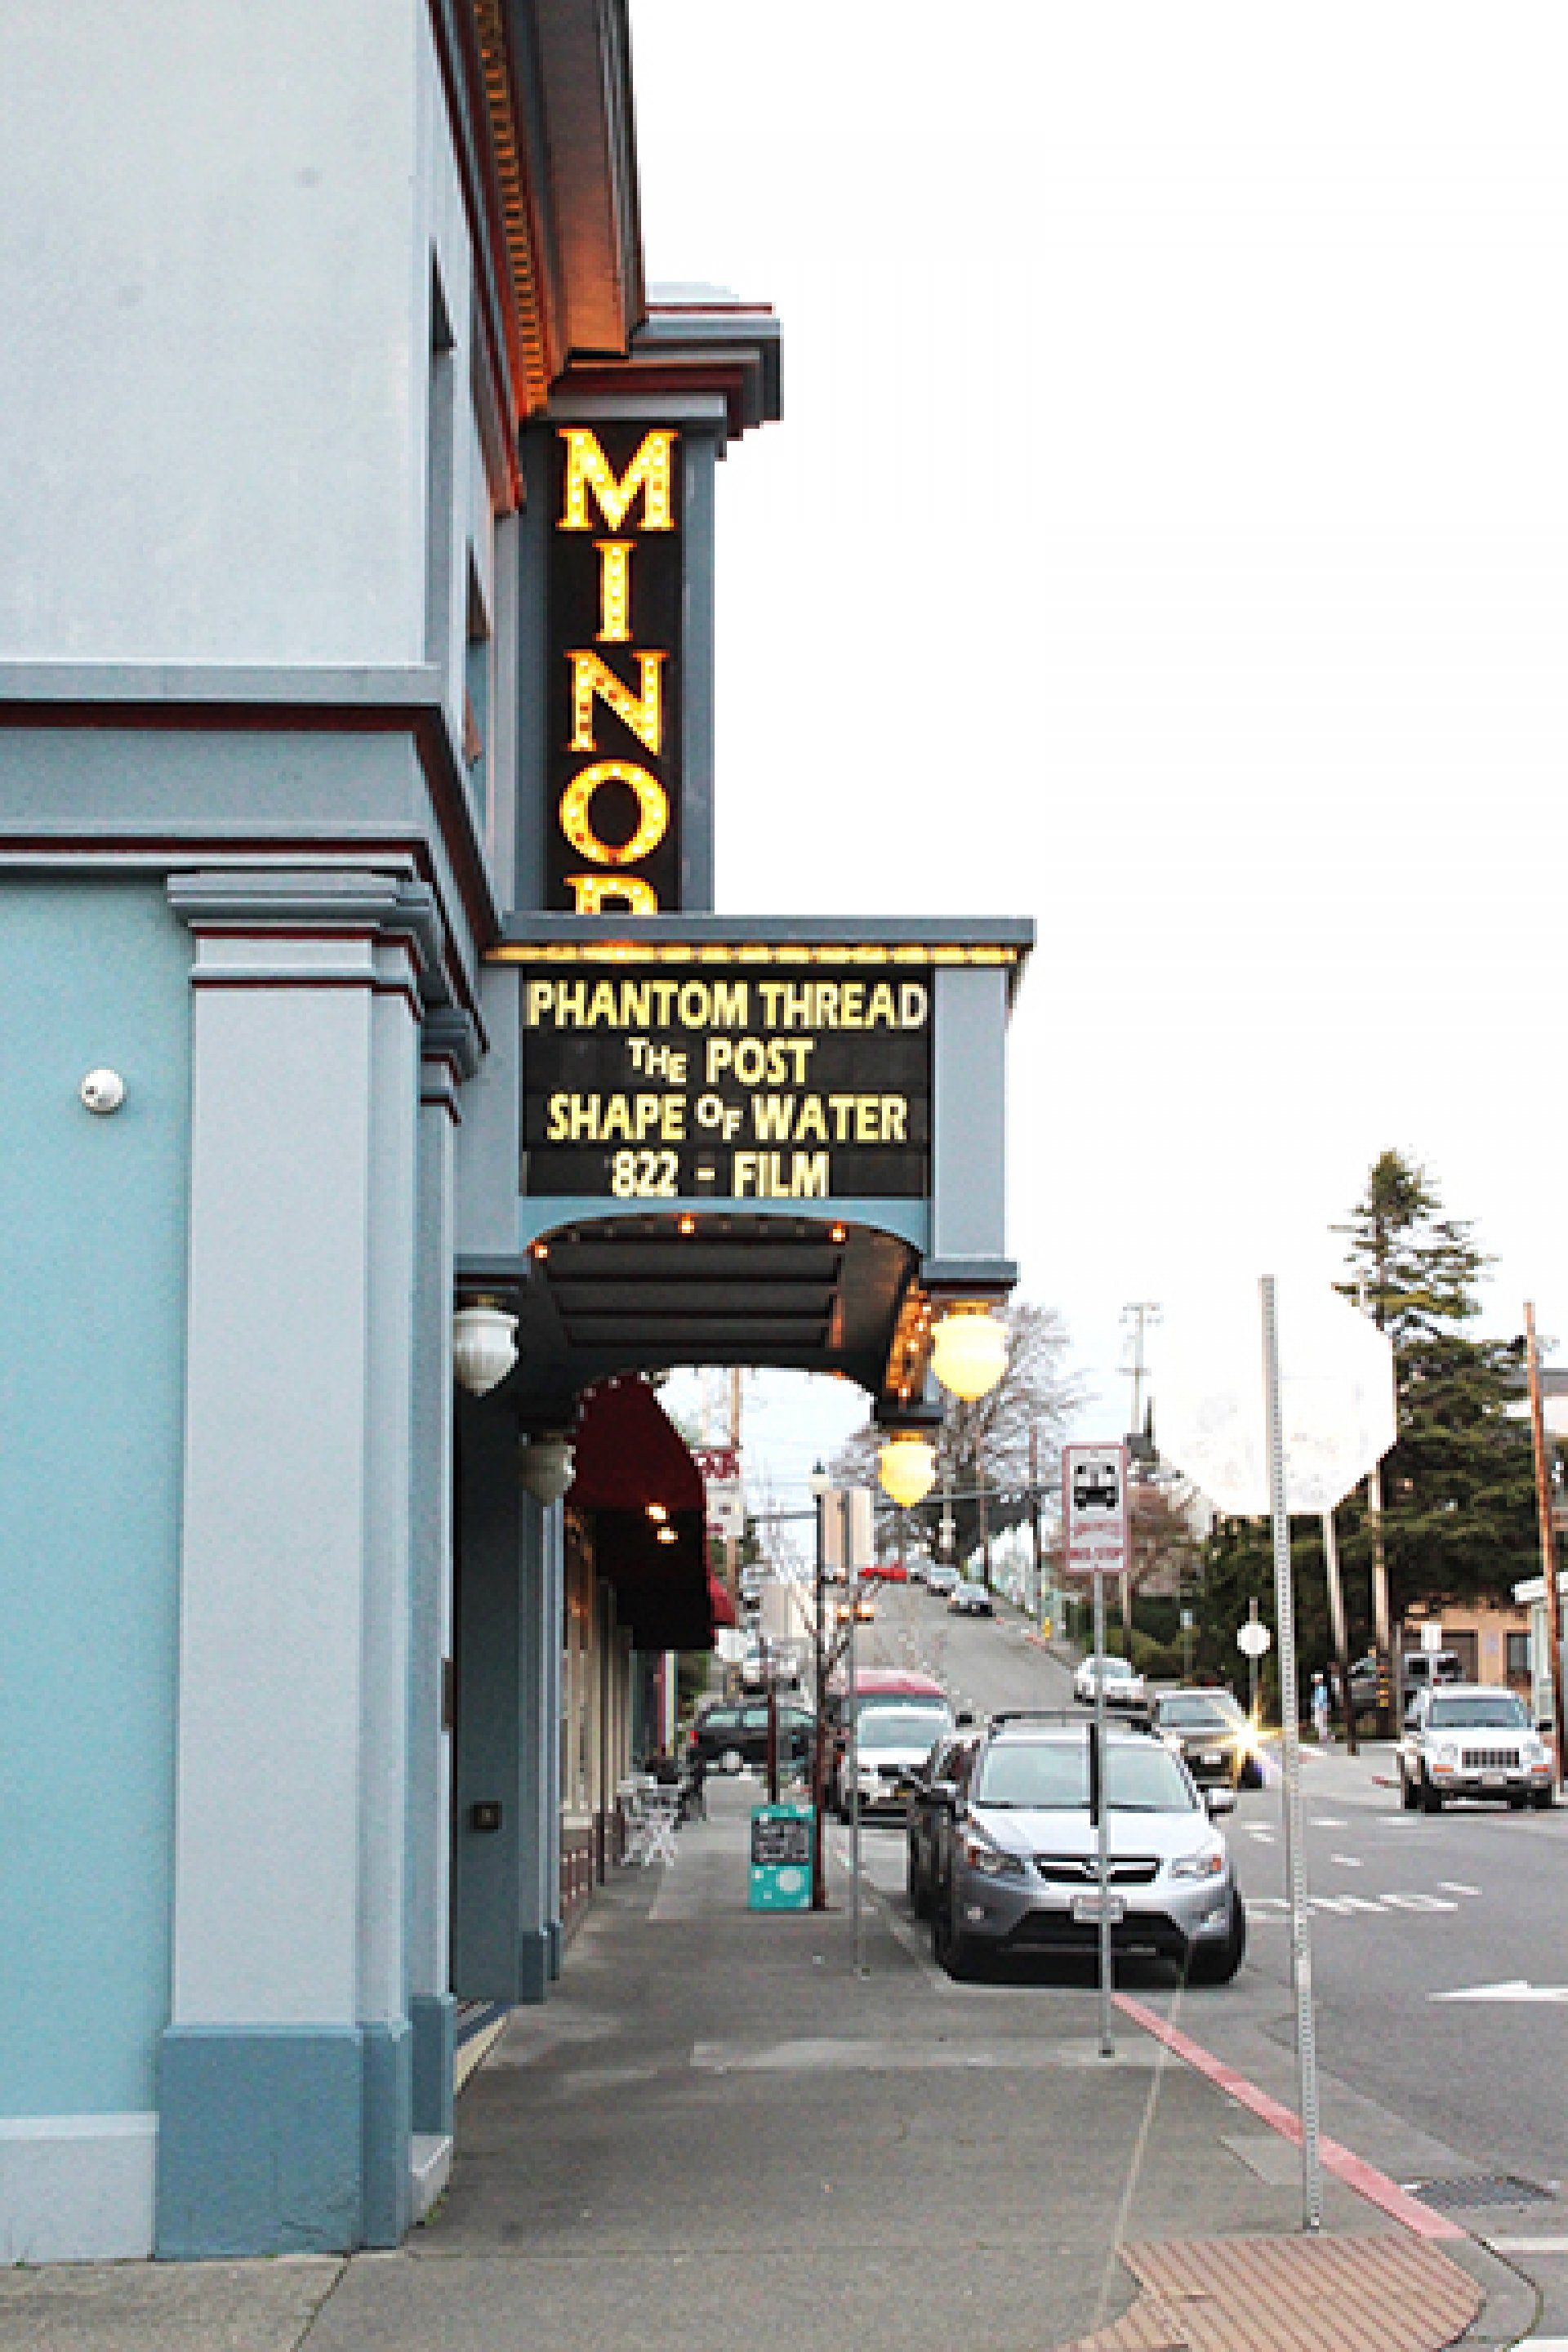 The Shape of Water is now playing at the Minor Theatre. Photo by Patrick Maravelias.